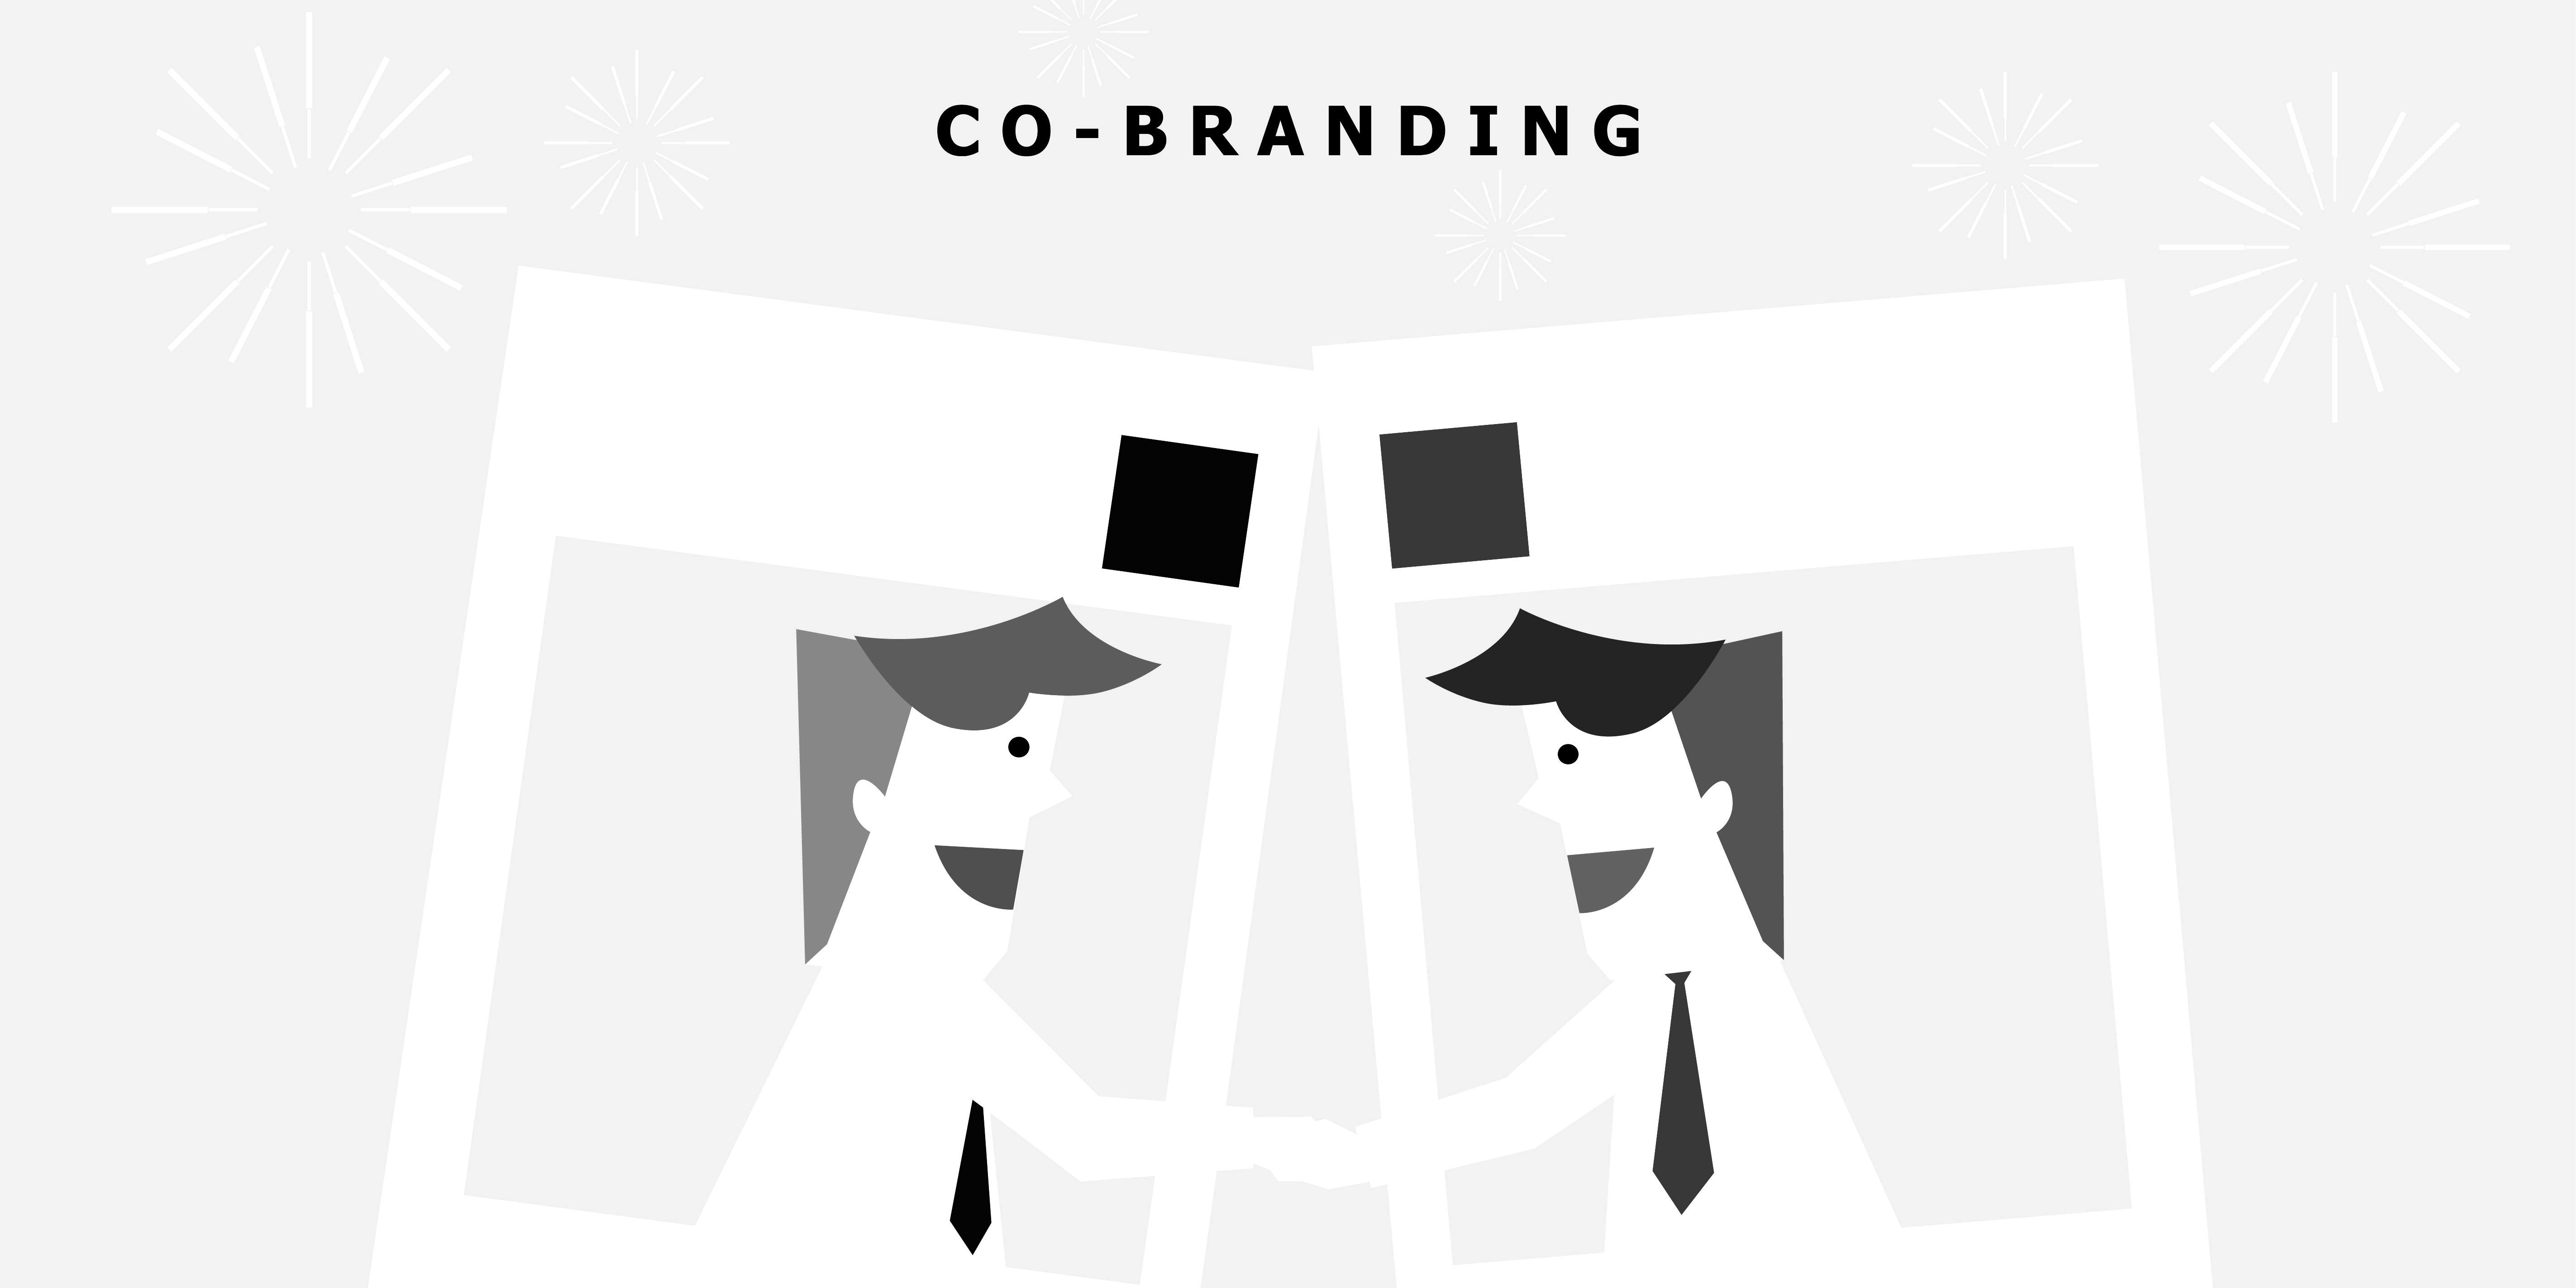 co branding Co-branding and co-marketing are both examples of how two great tastes can taste great together co-branding can make a huge impact on the market ideally, it renews interest in both brand partners and creates a windfall that stays current in customers' imagination for years to come both co.